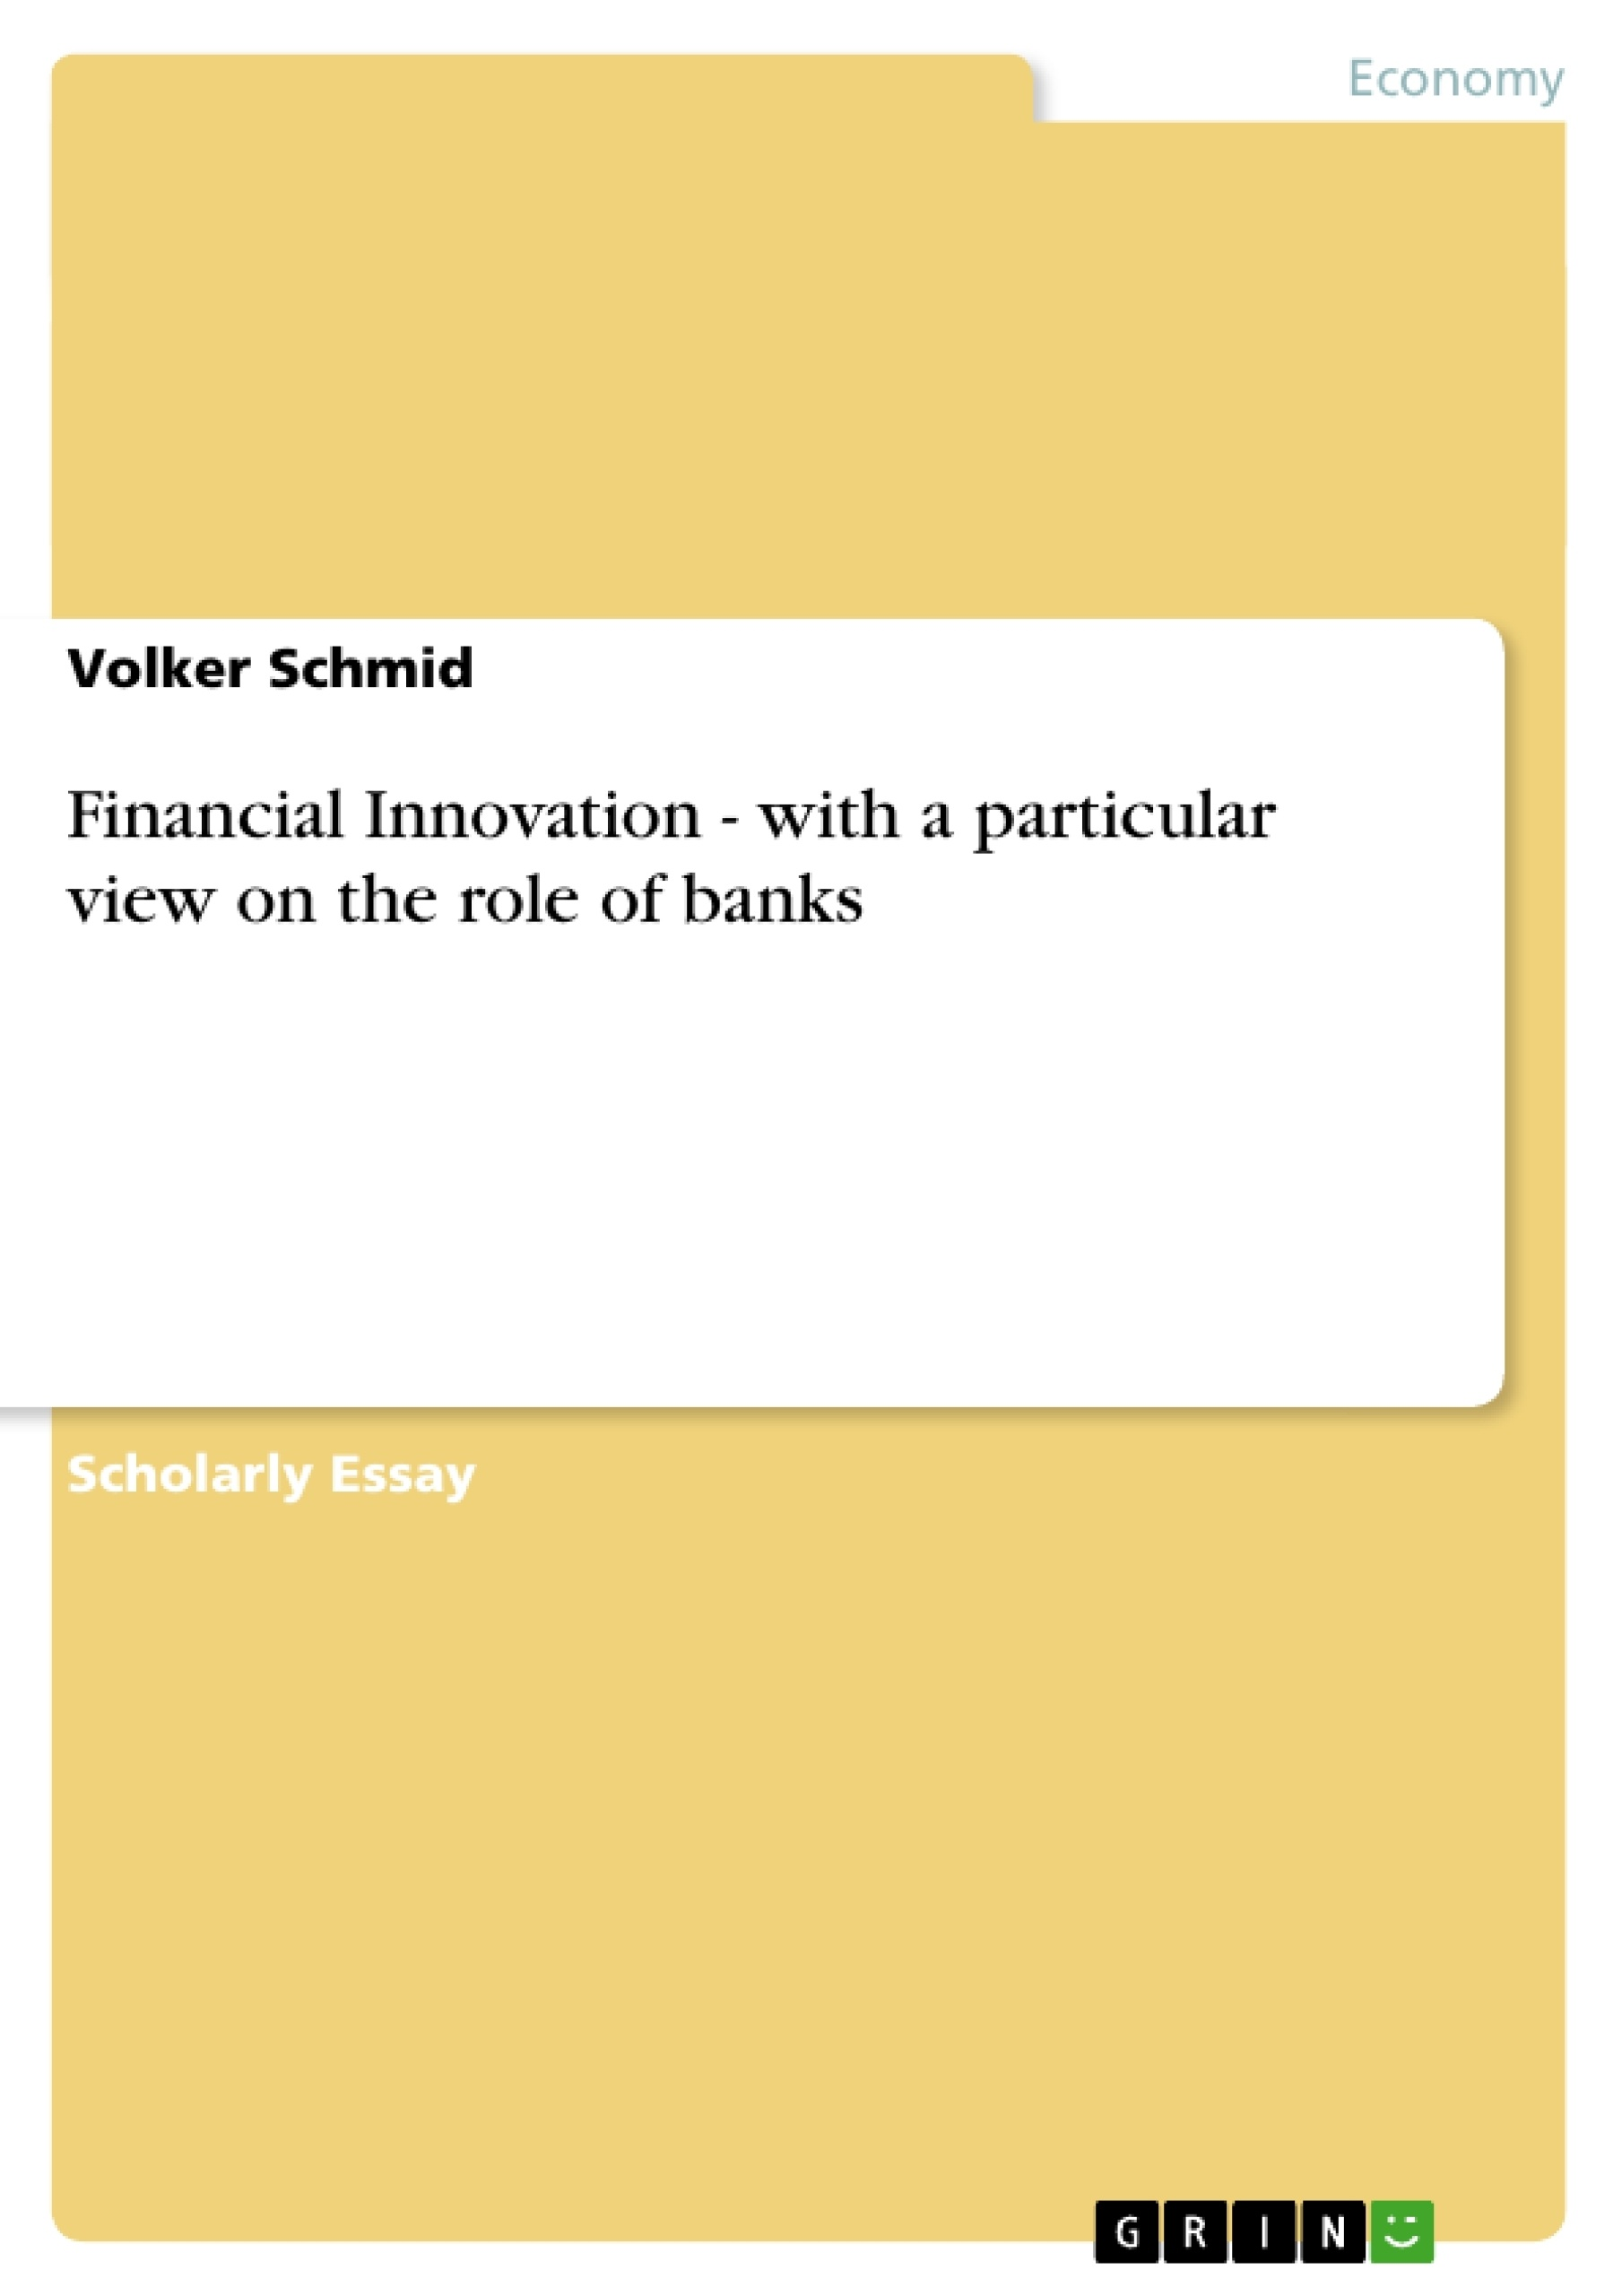 Title: Financial Innovation - with a particular view on the role of banks